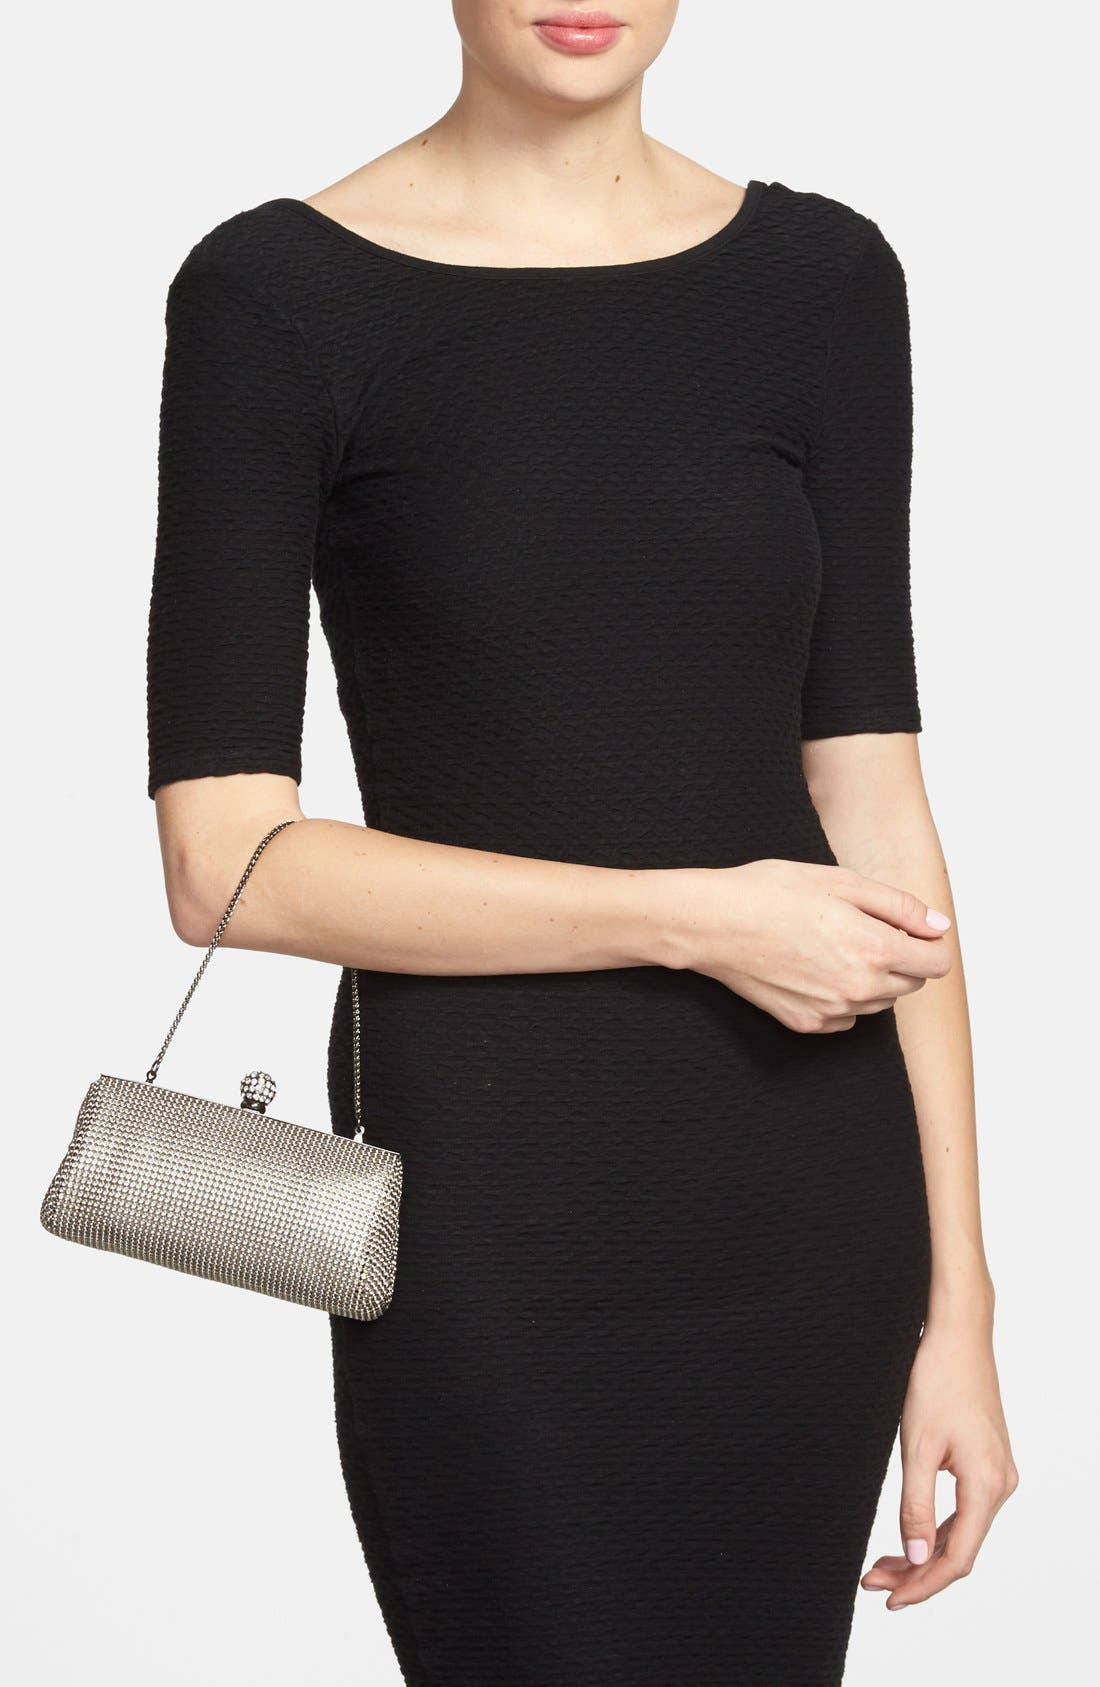 WHITING & DAVIS,                             'Crystal' Mesh Clutch,                             Alternate thumbnail 3, color,                             PEWTER